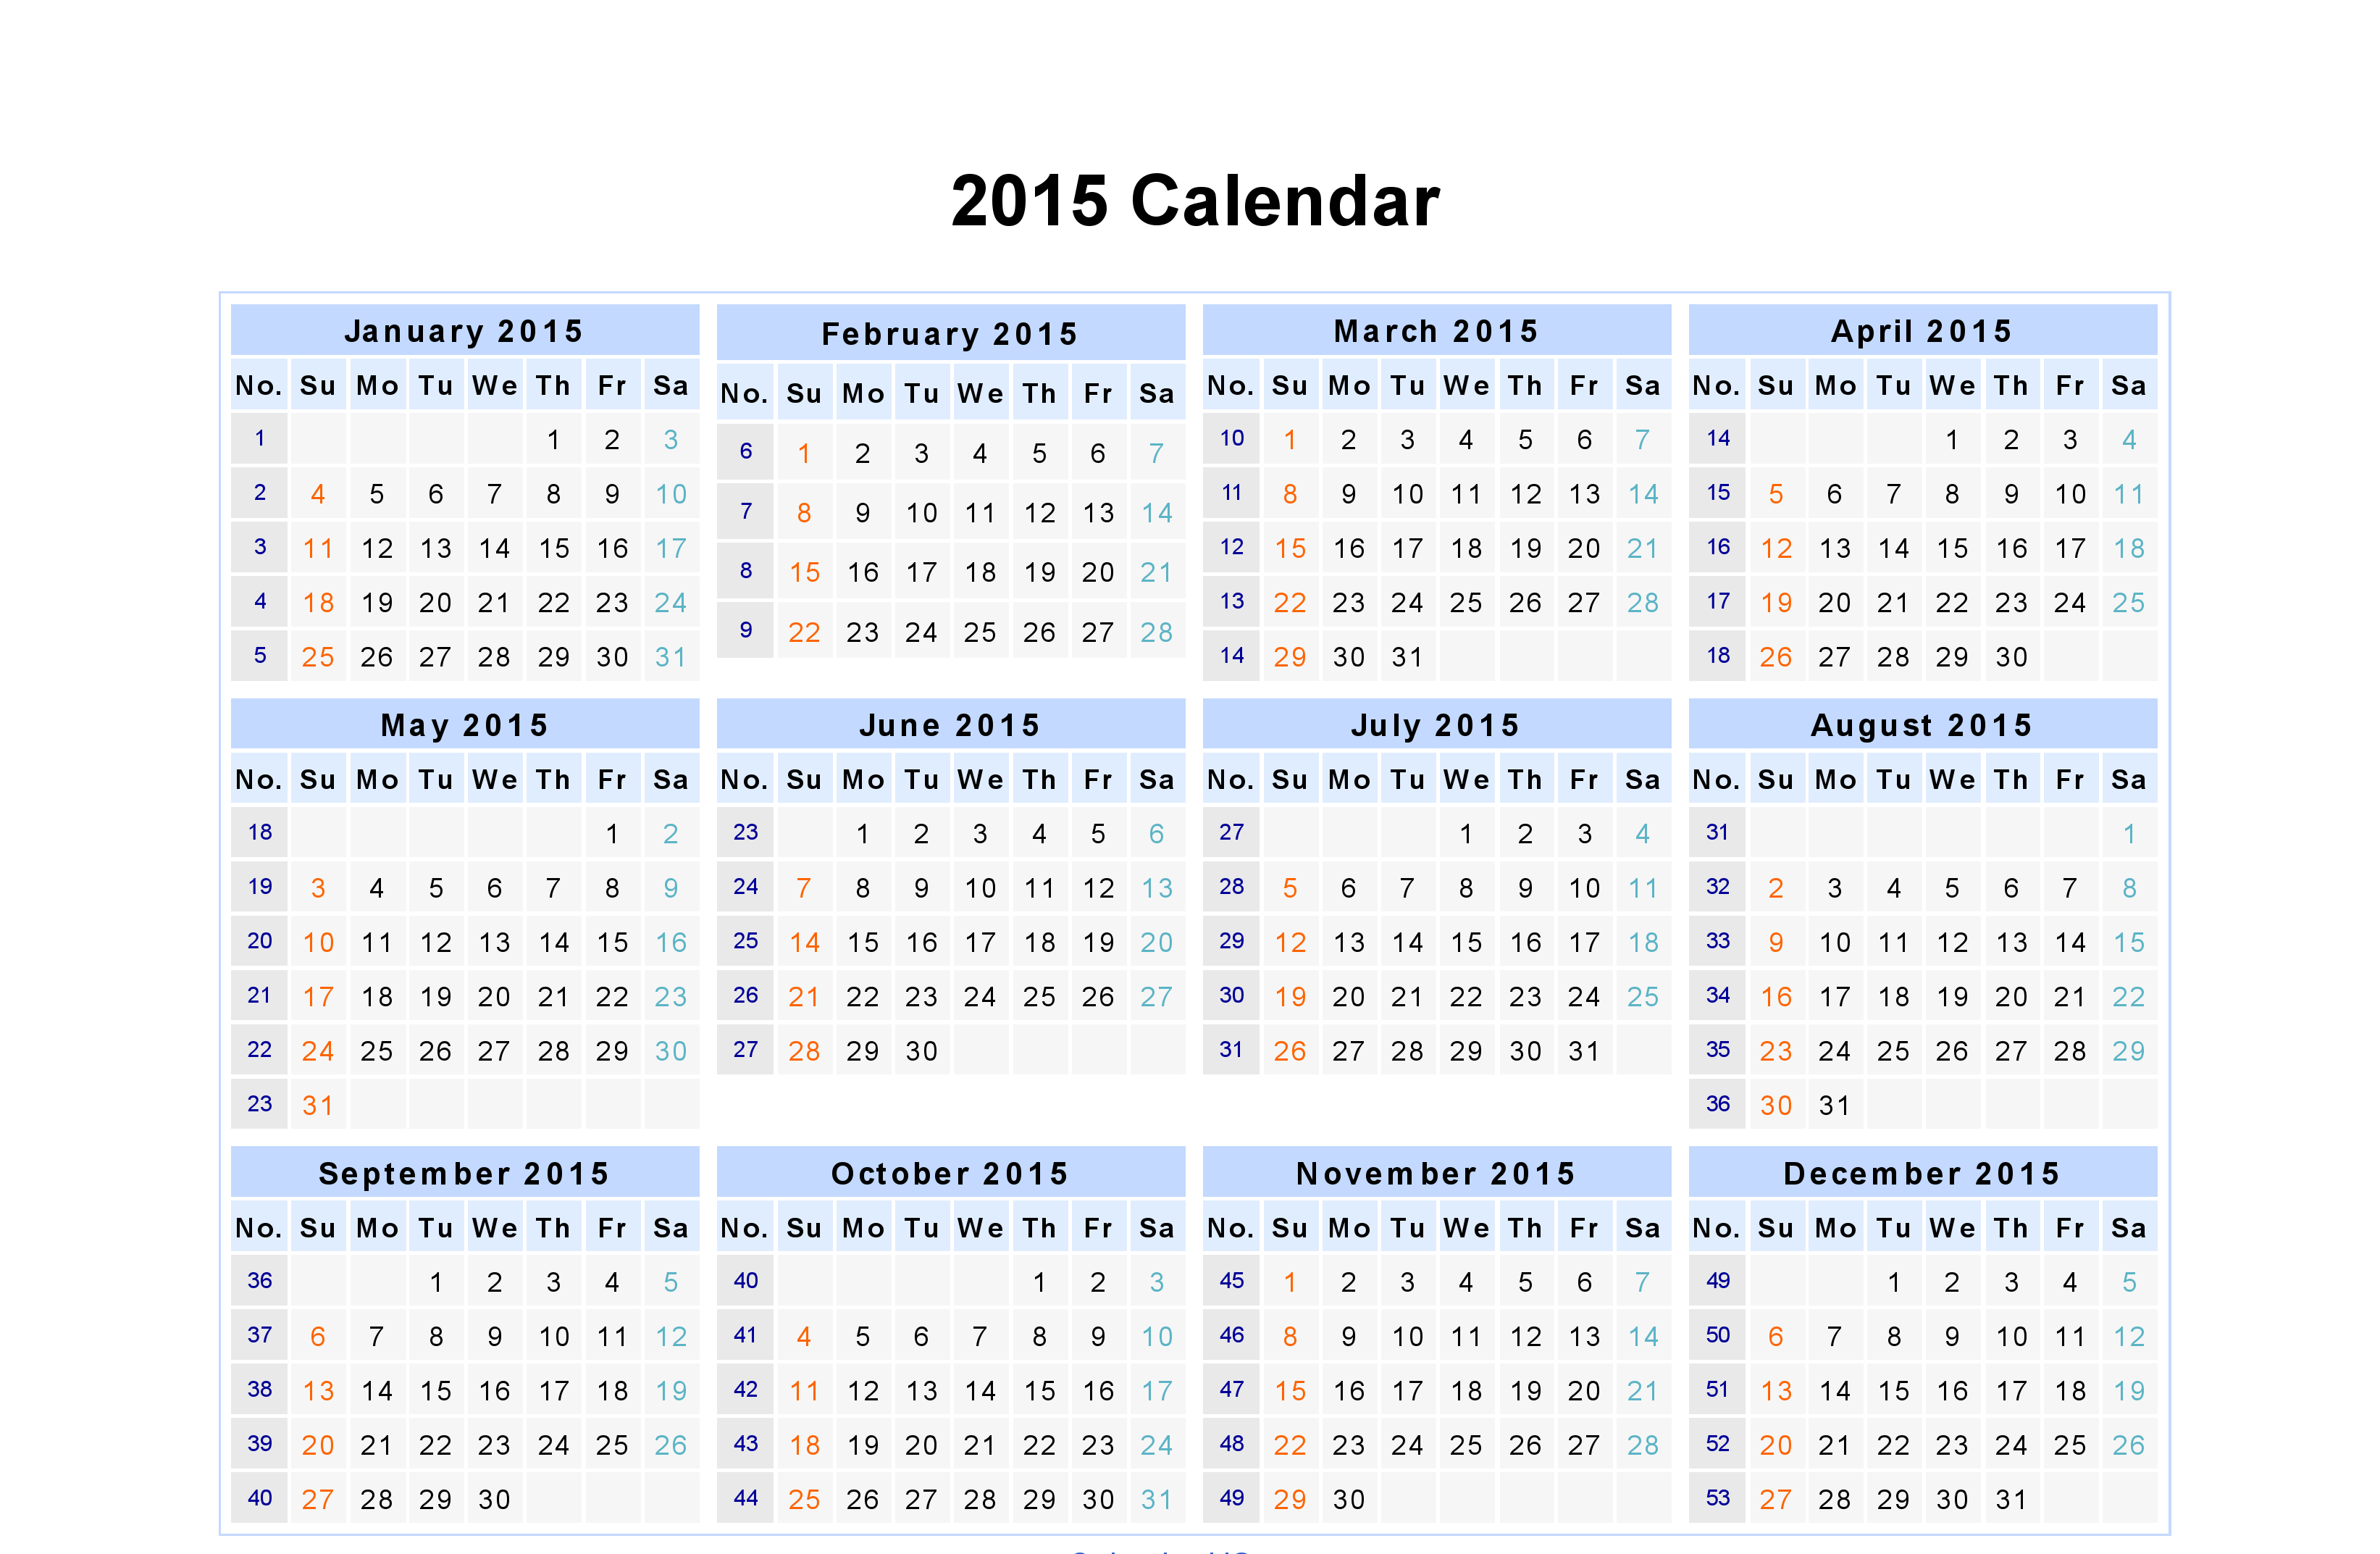 Monthly Date Wise Calendar Year 2015 | Excel Calendar, Free